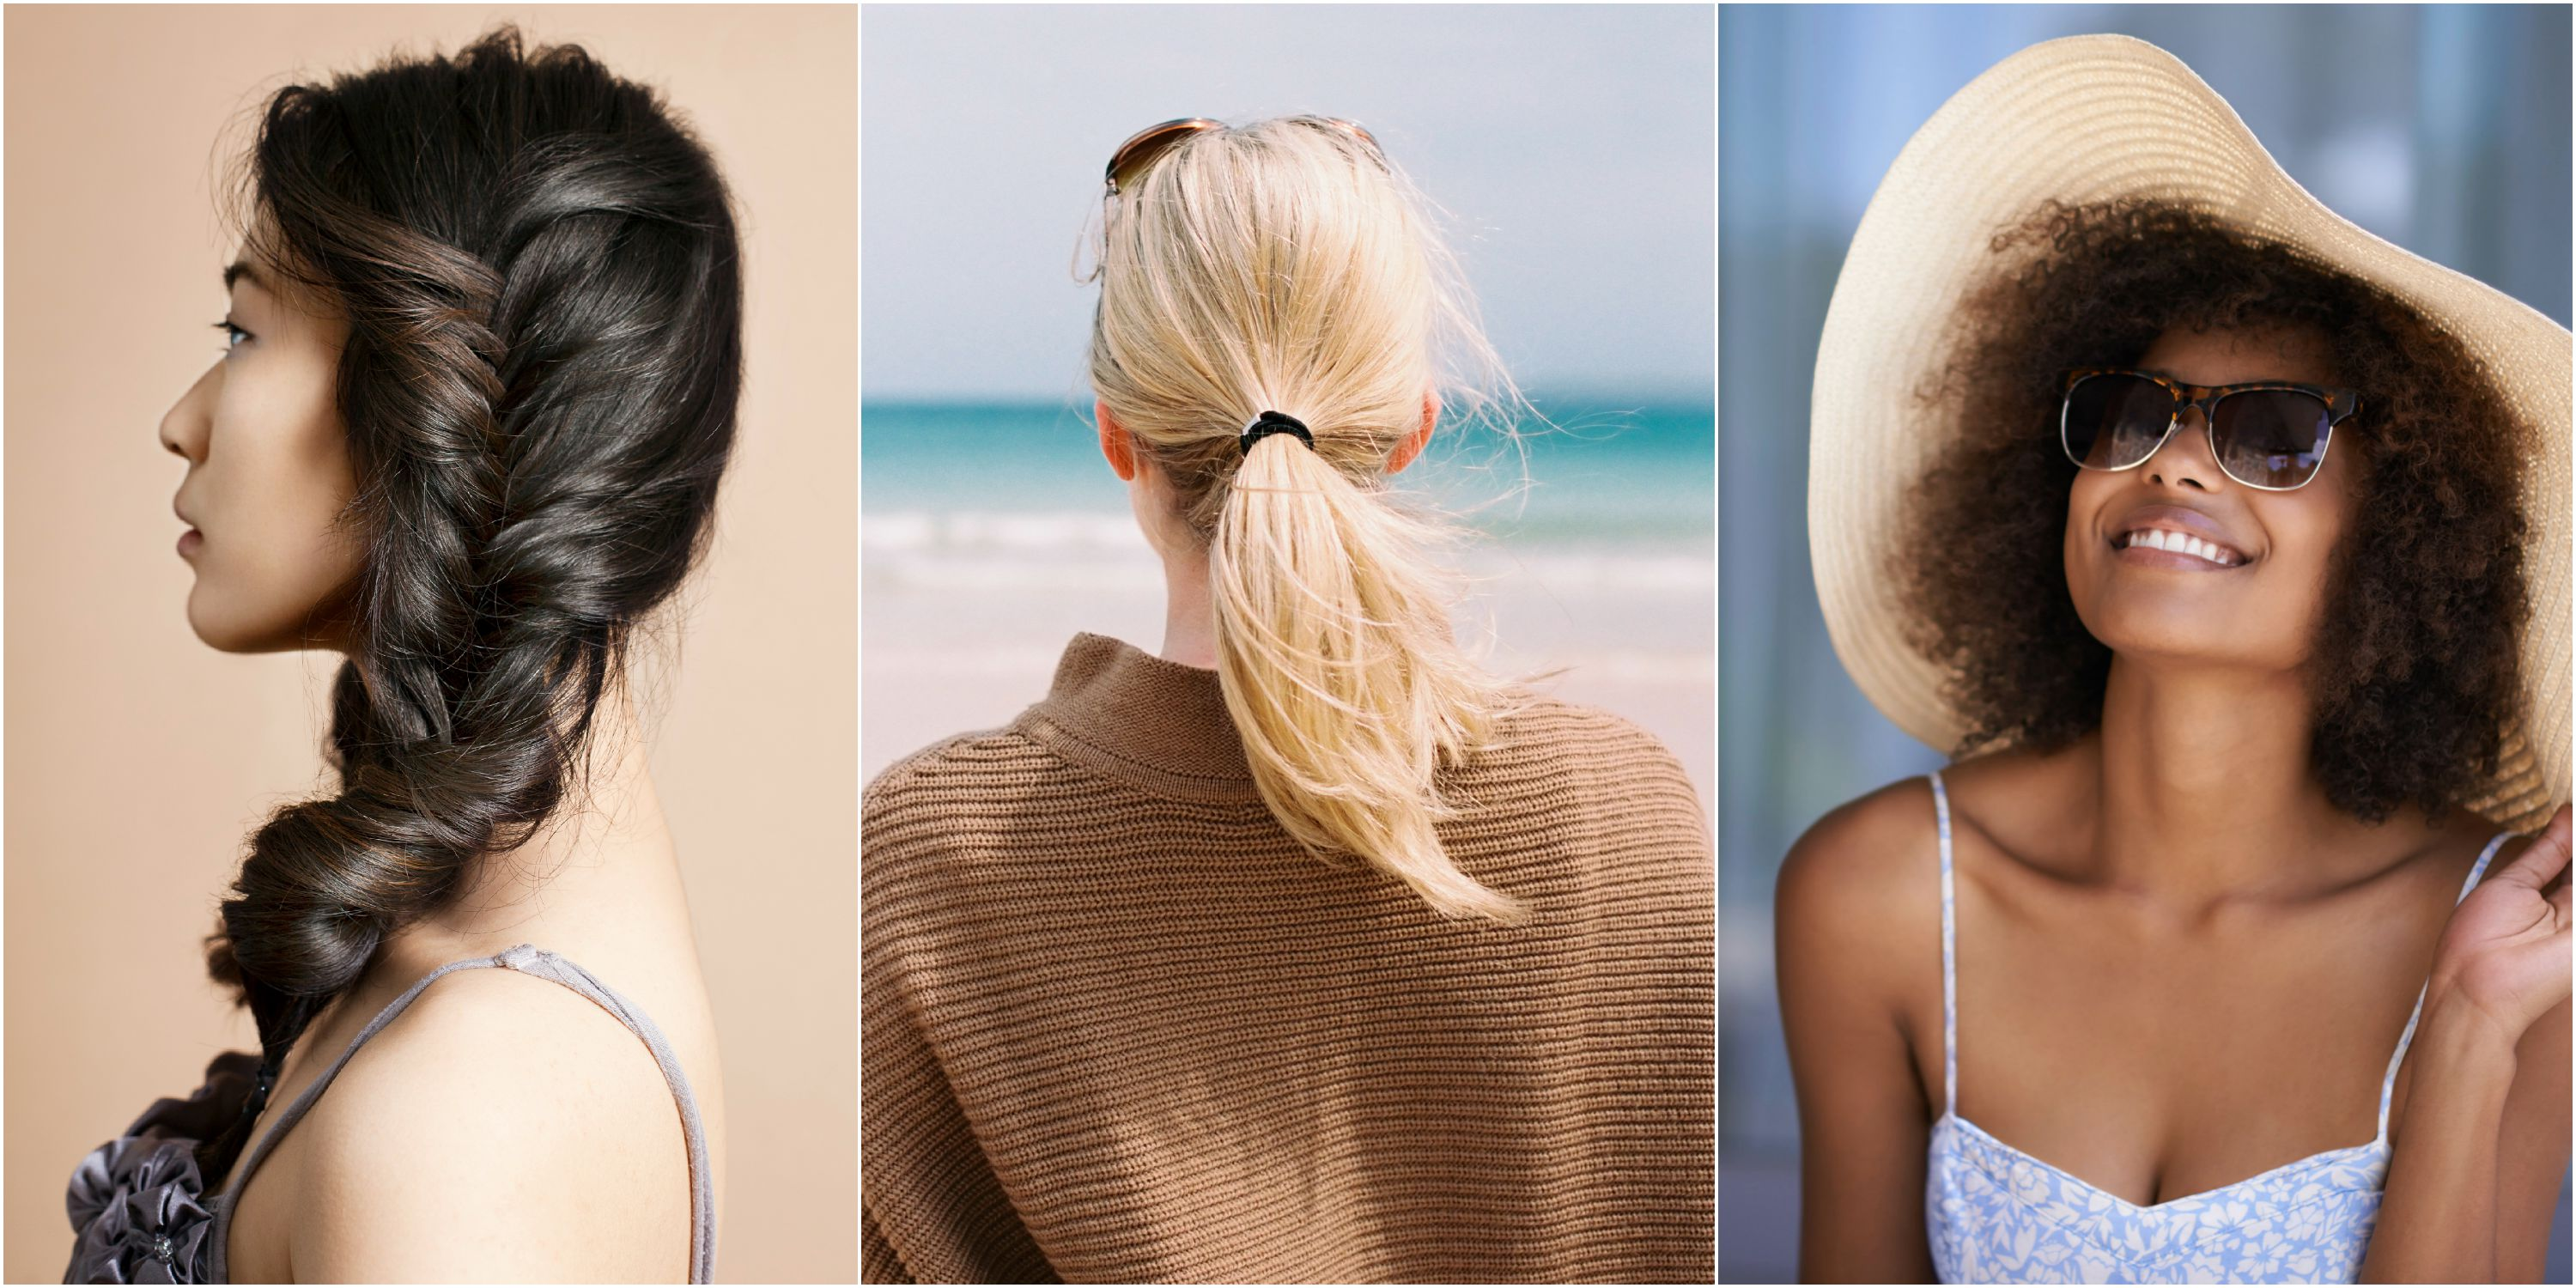 Hair Cut Styles: What Your Lazy Day Hairstyle Says About You